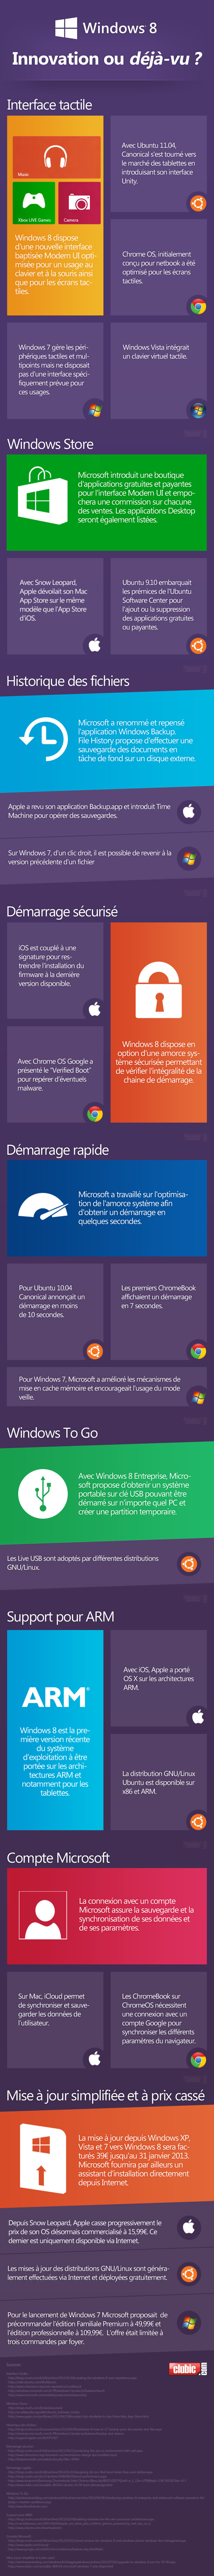 05462005-photo-infographie-windows-8.jpg